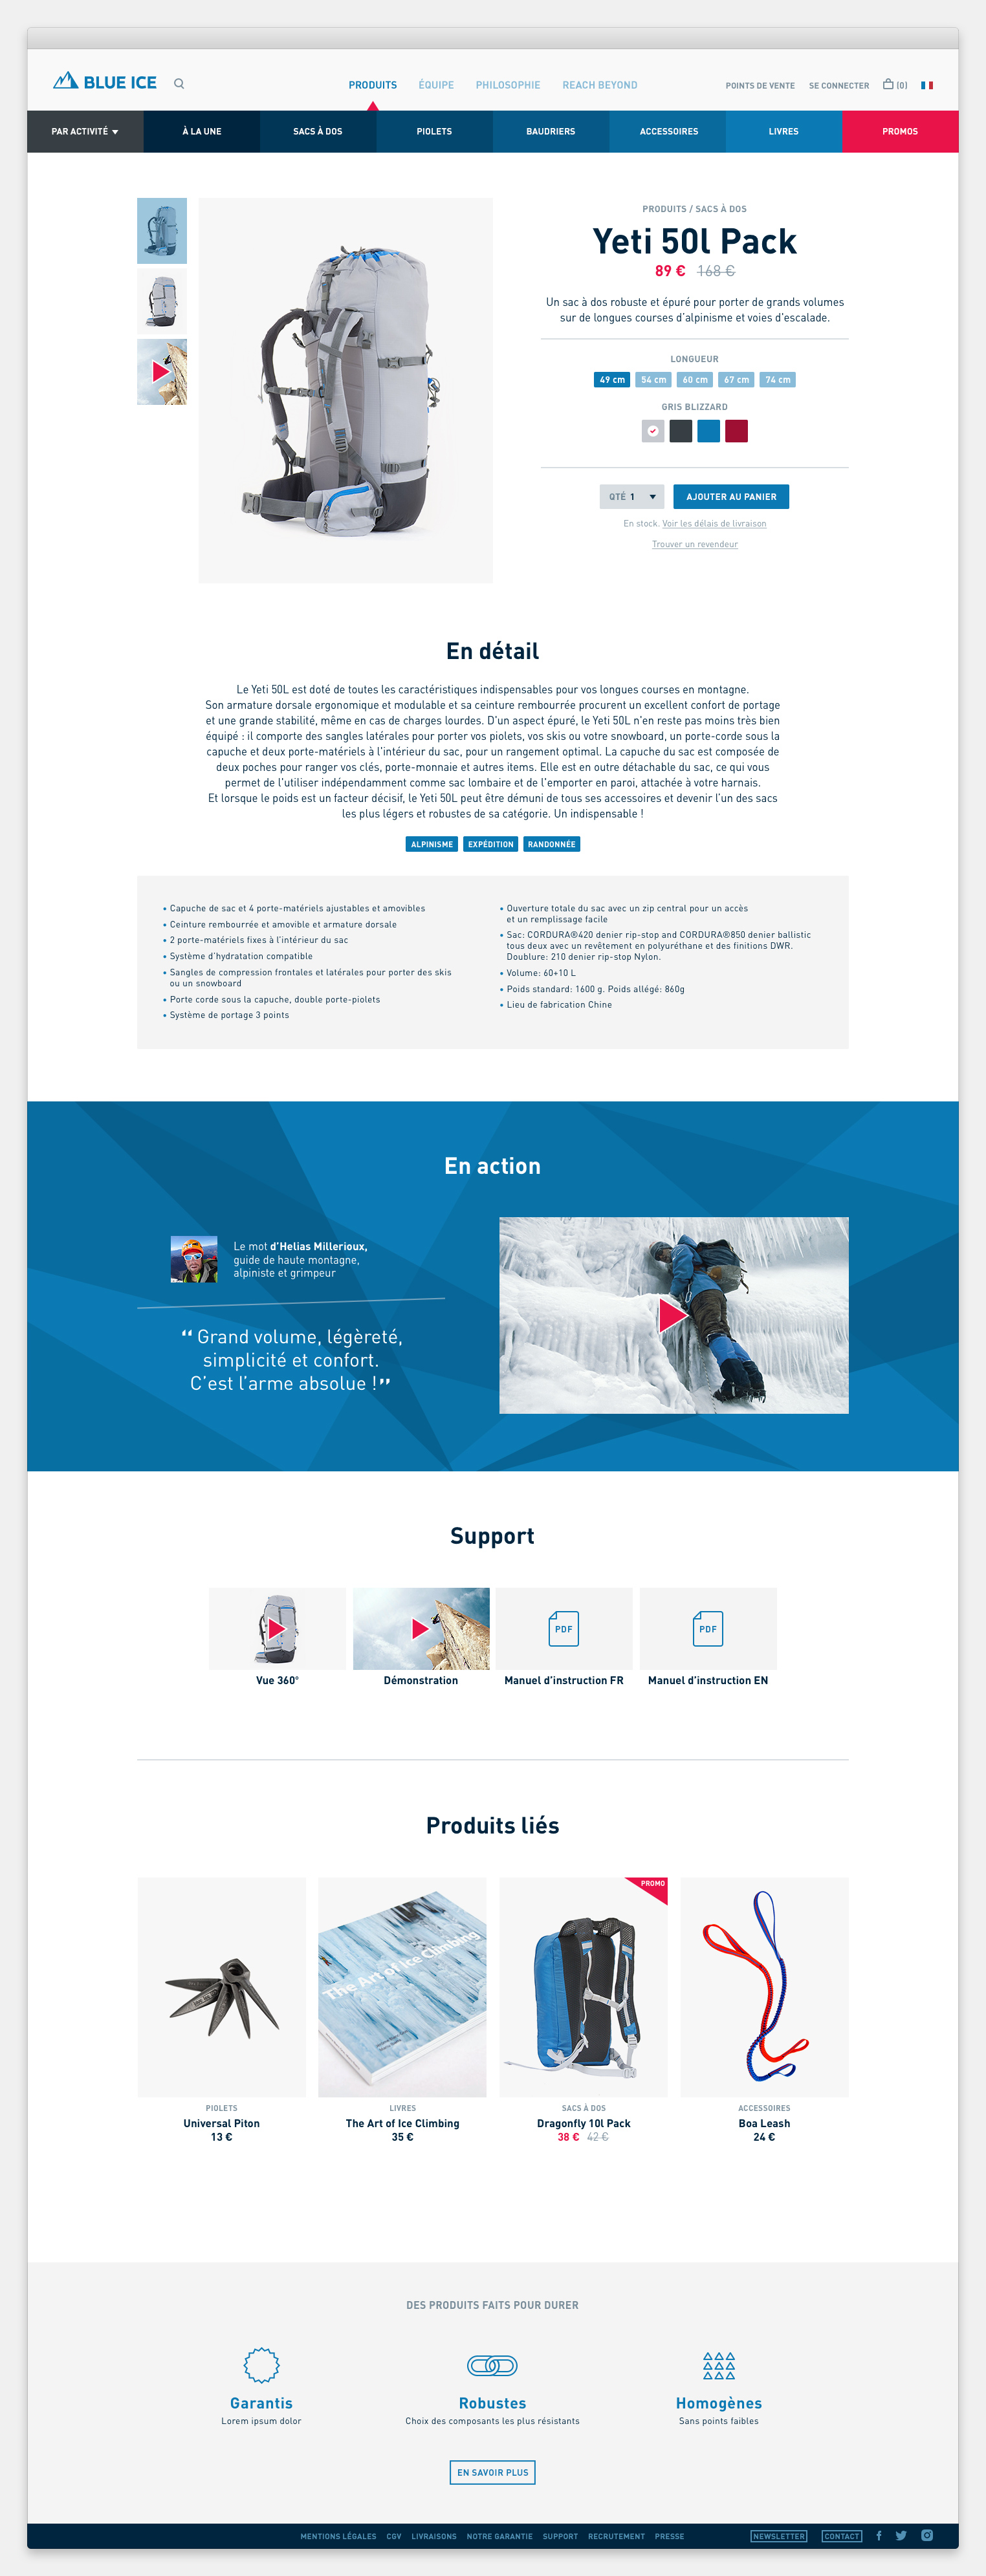 pageProjet_BlueIce_img05